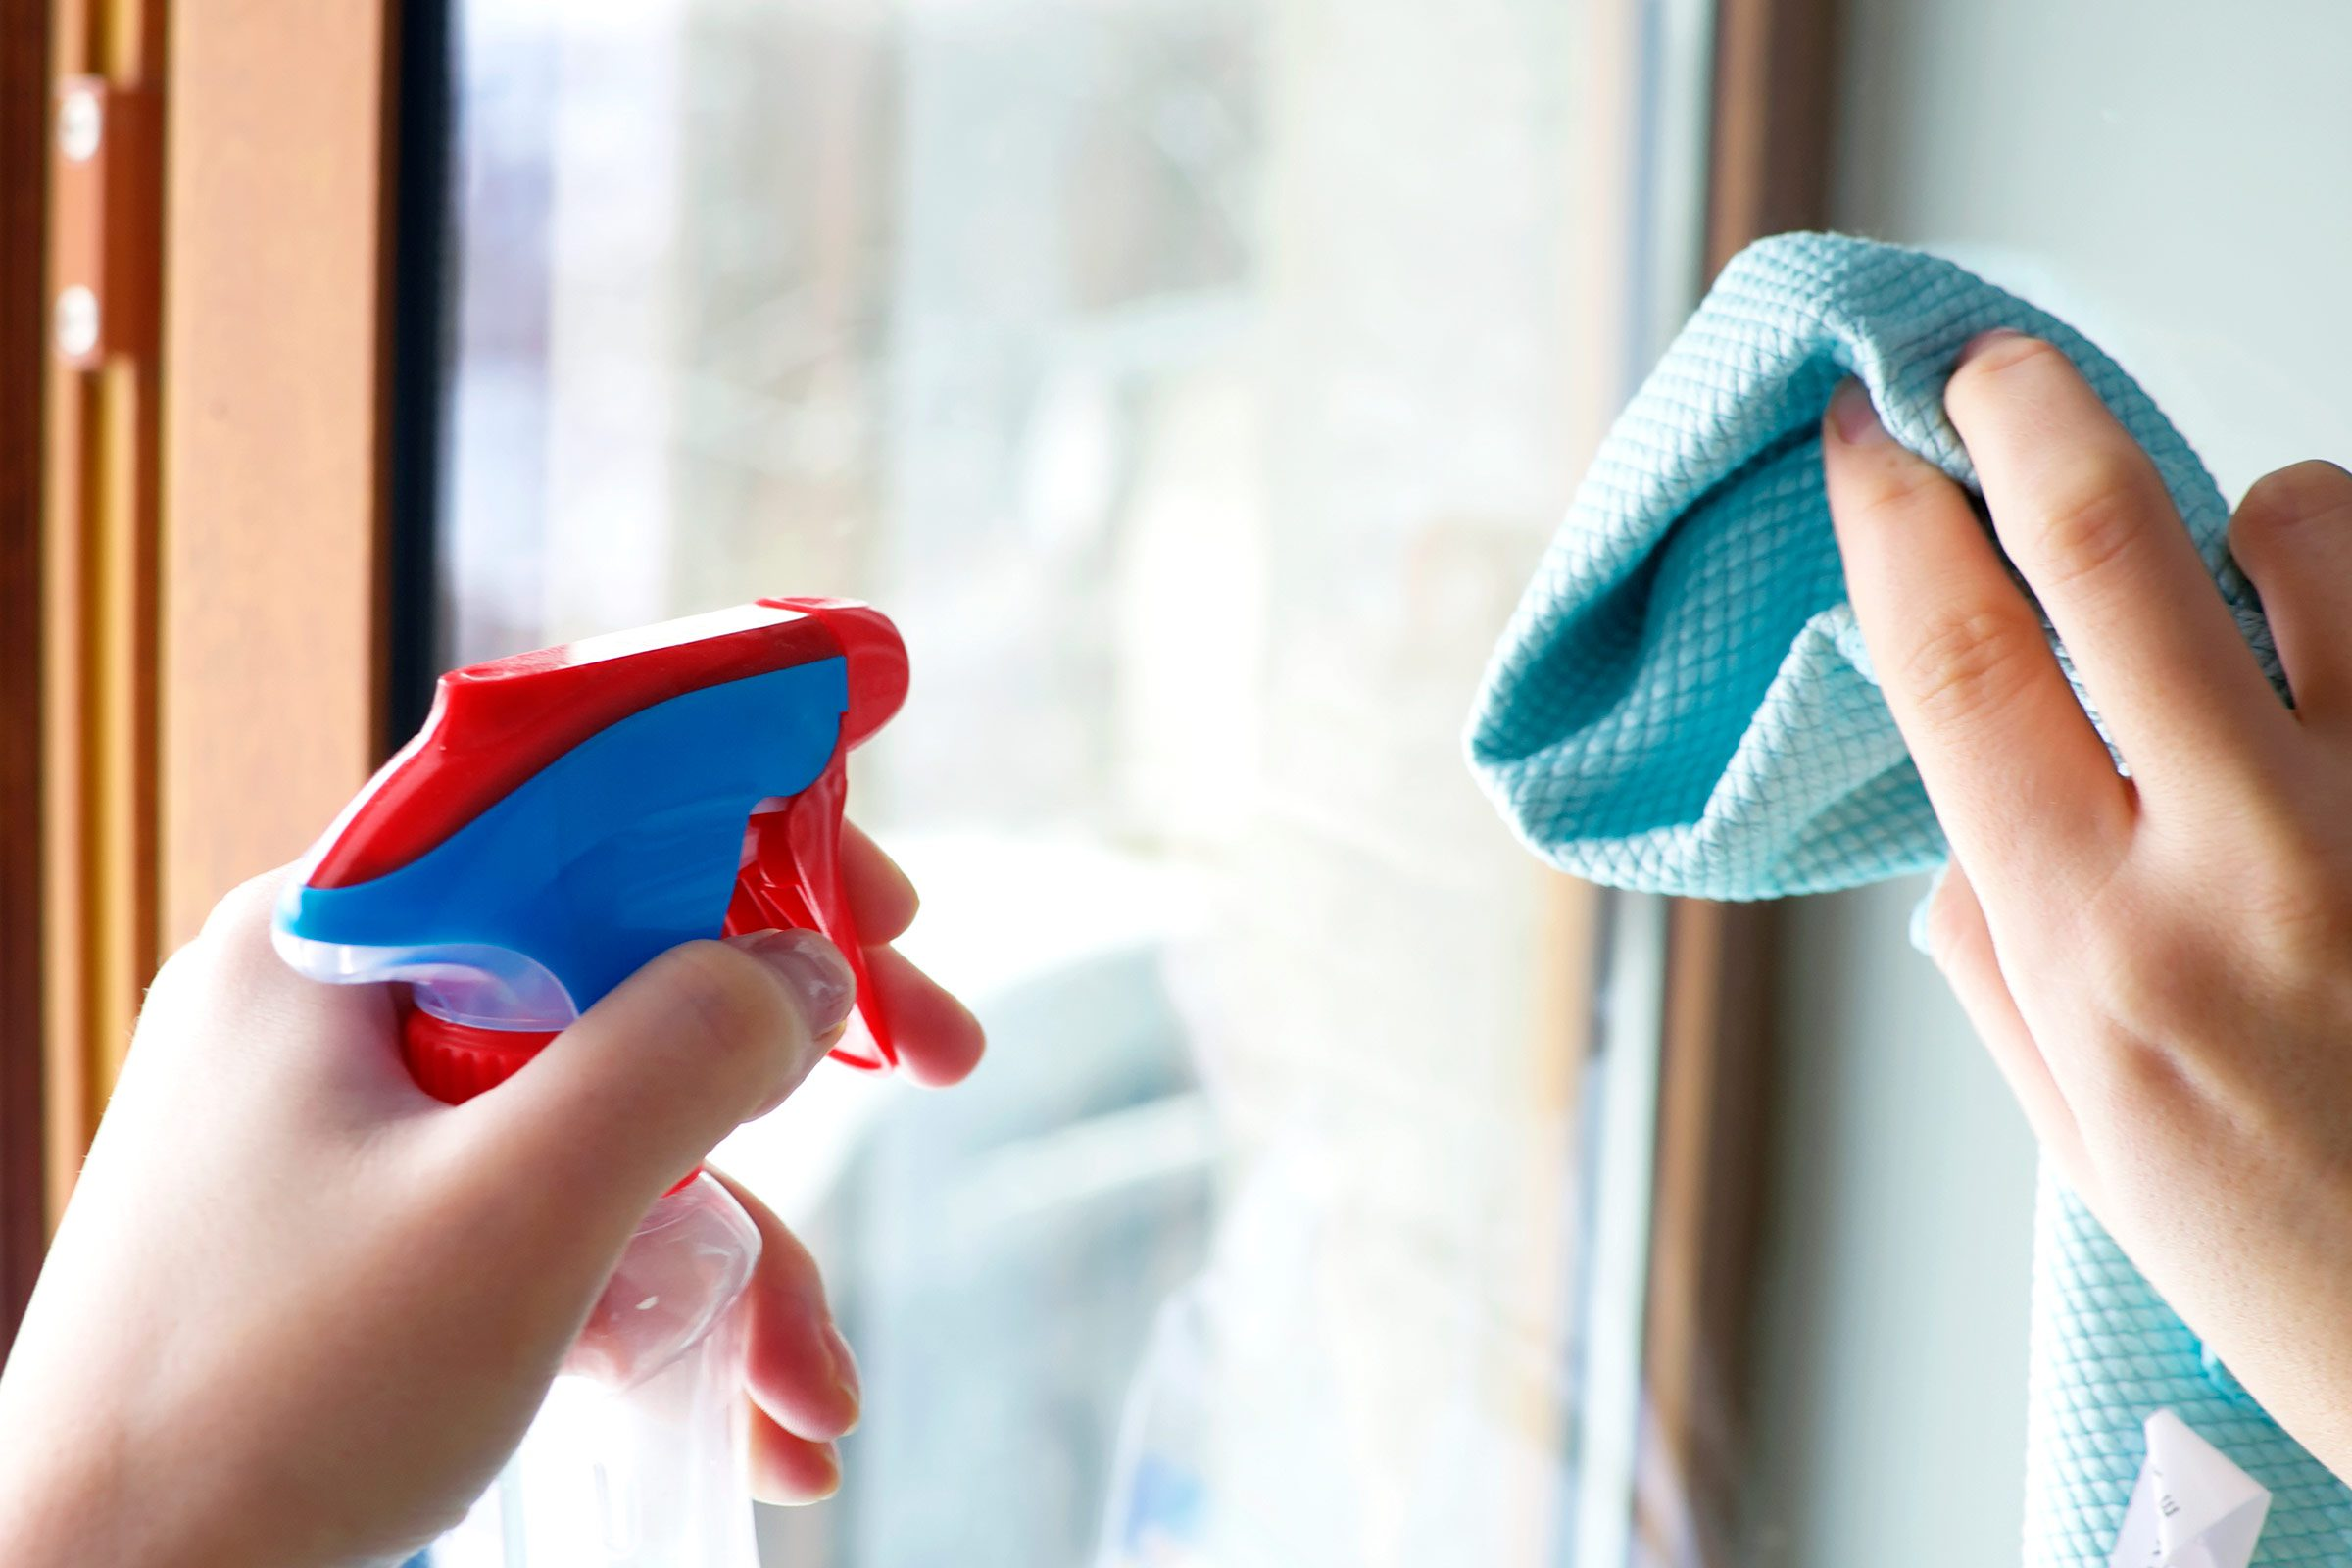 Best thing to clean windows with - If You Have Filthy Windows